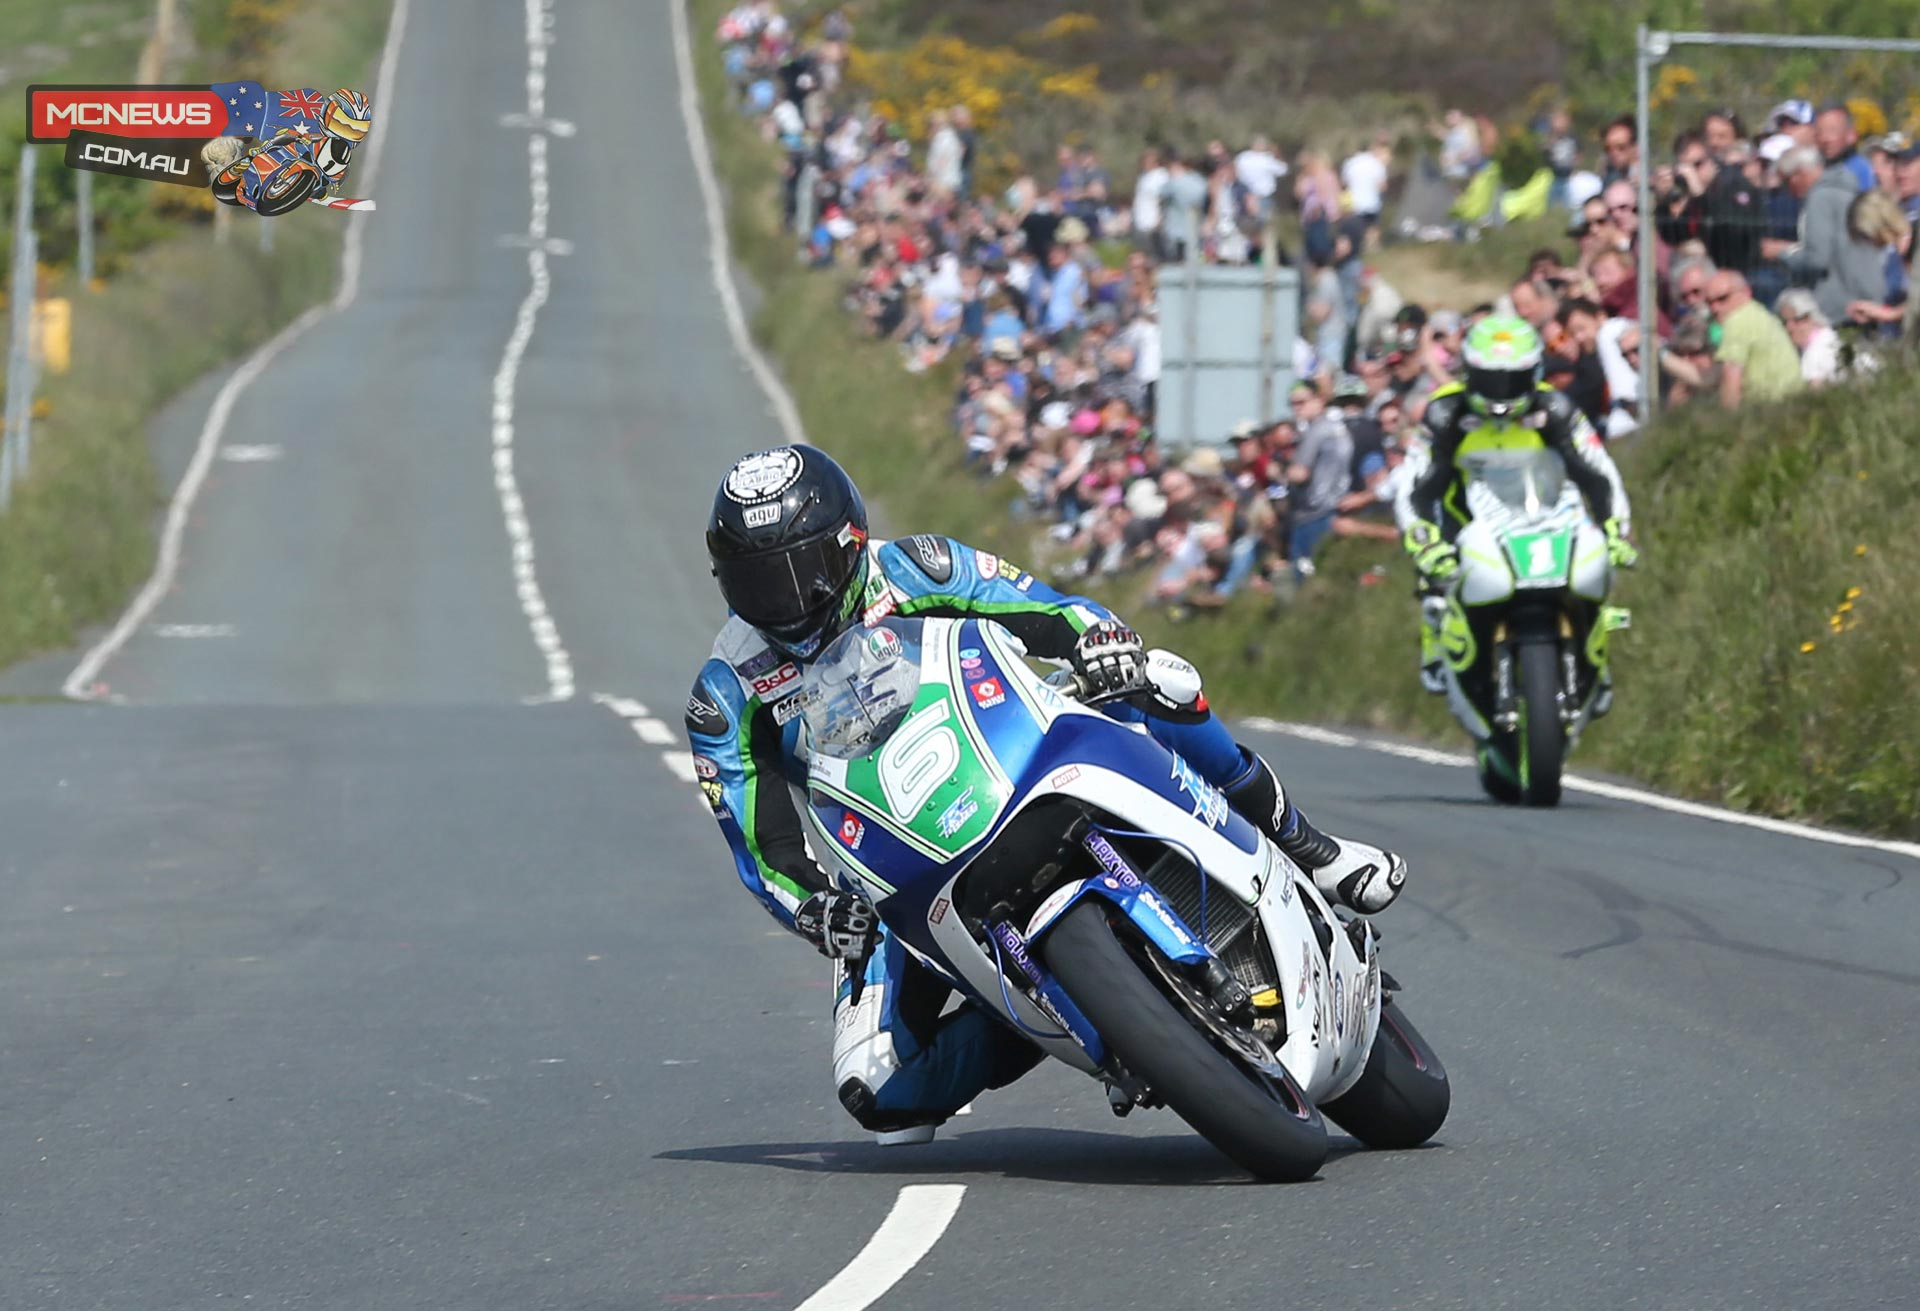 Ivan Lintin at Creg ny baa during Friday's Bennetts Lightweight TT. Credit Dave Kneen/Pacemaker Press Intl.